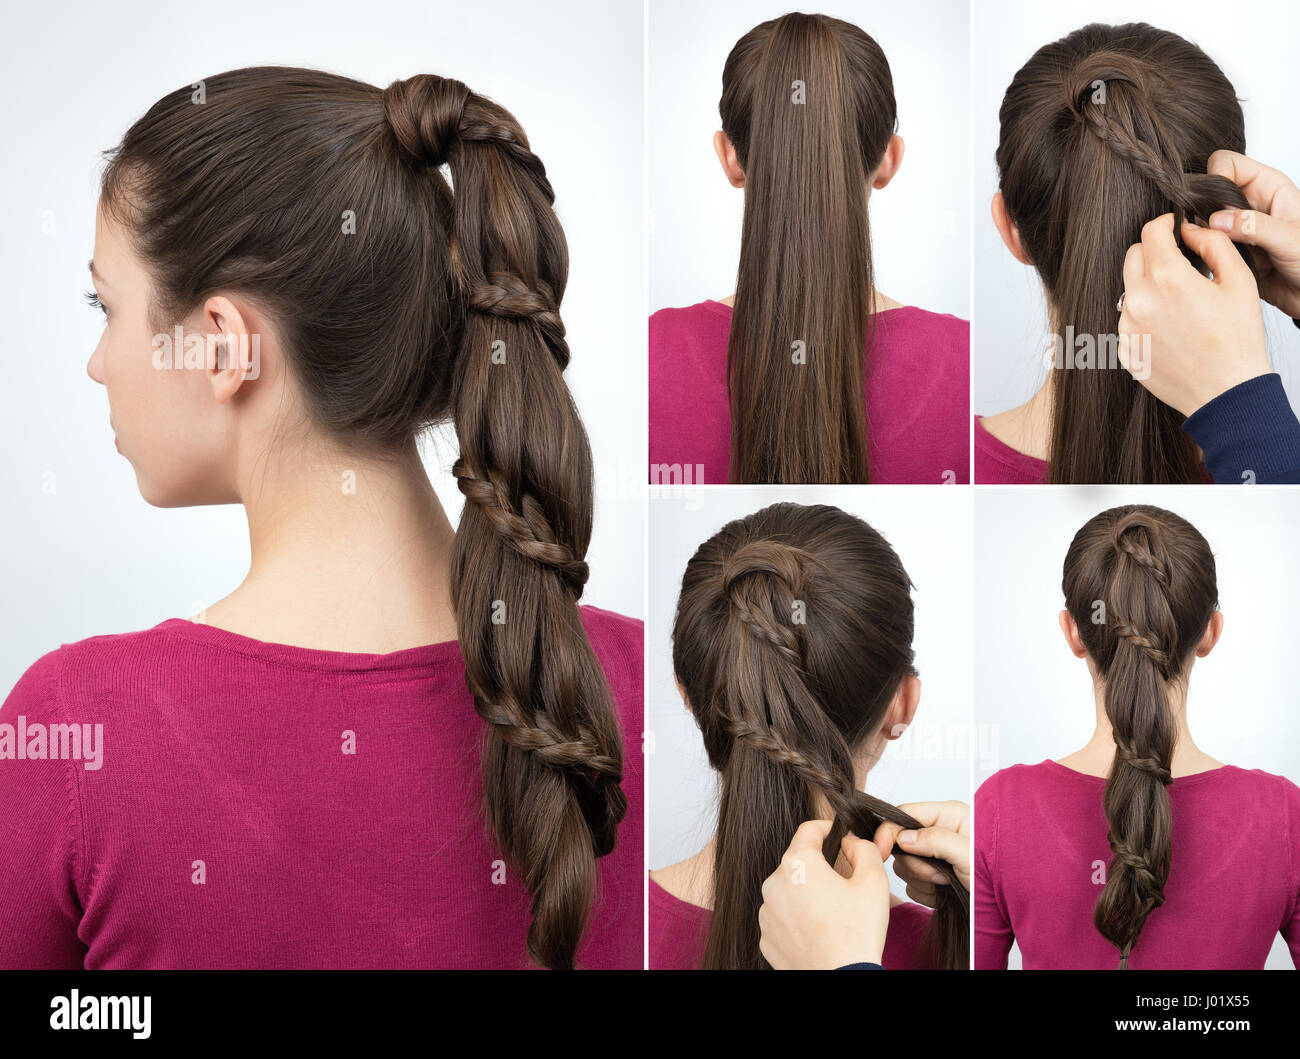 Braided Hairstyle For Party Tutorial Step By Step Beautiful Stock Photo Alamy